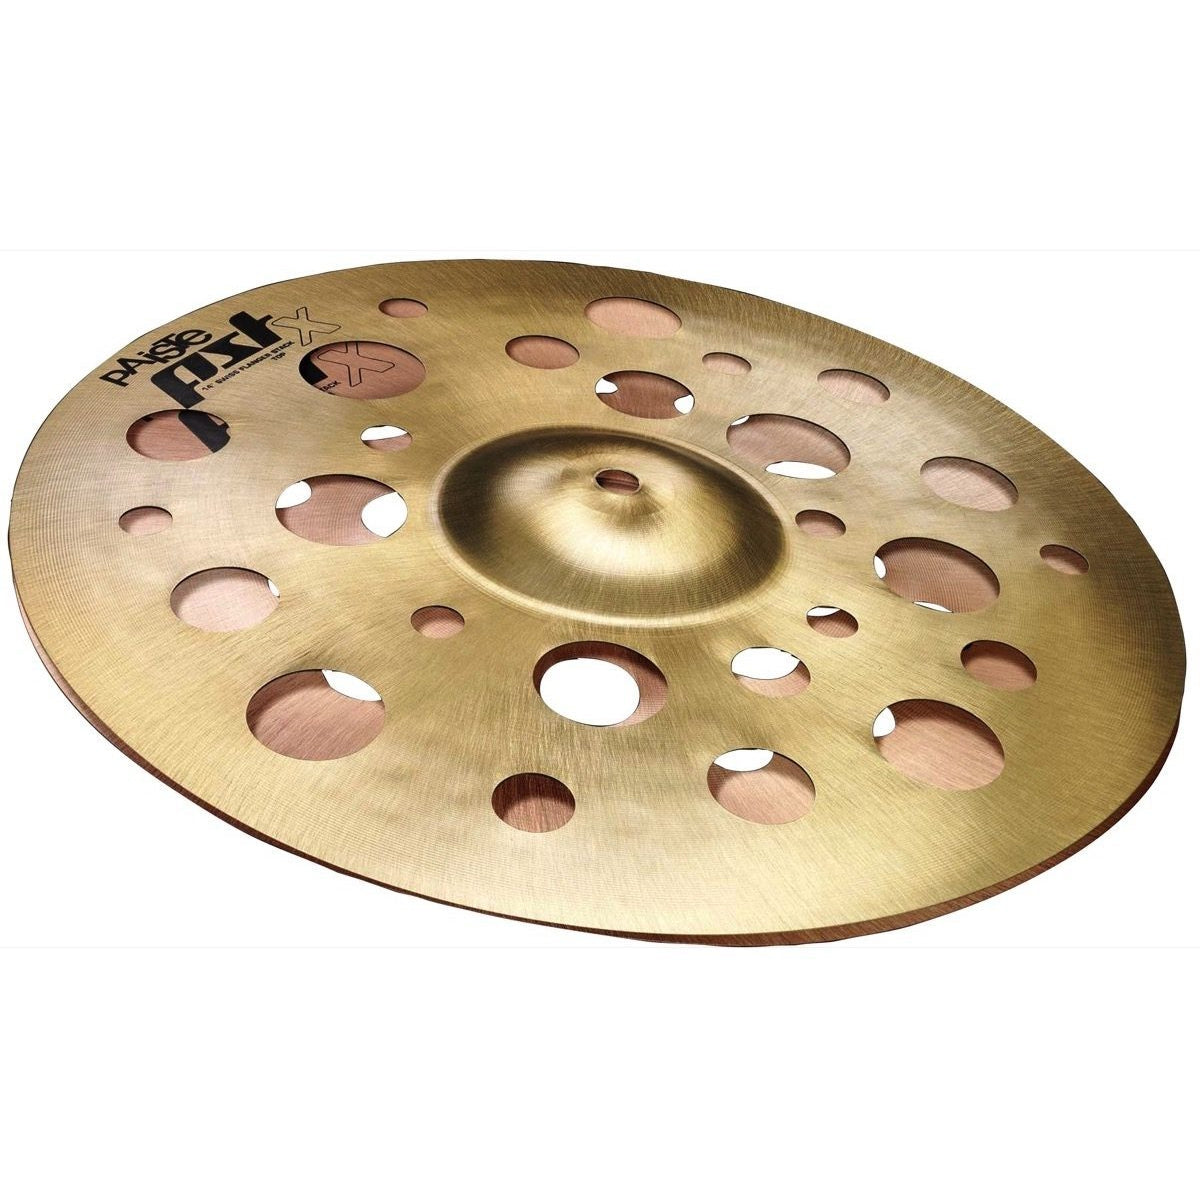 Paiste PST X Swiss Flanger Stack Cymbal, 14 Inch